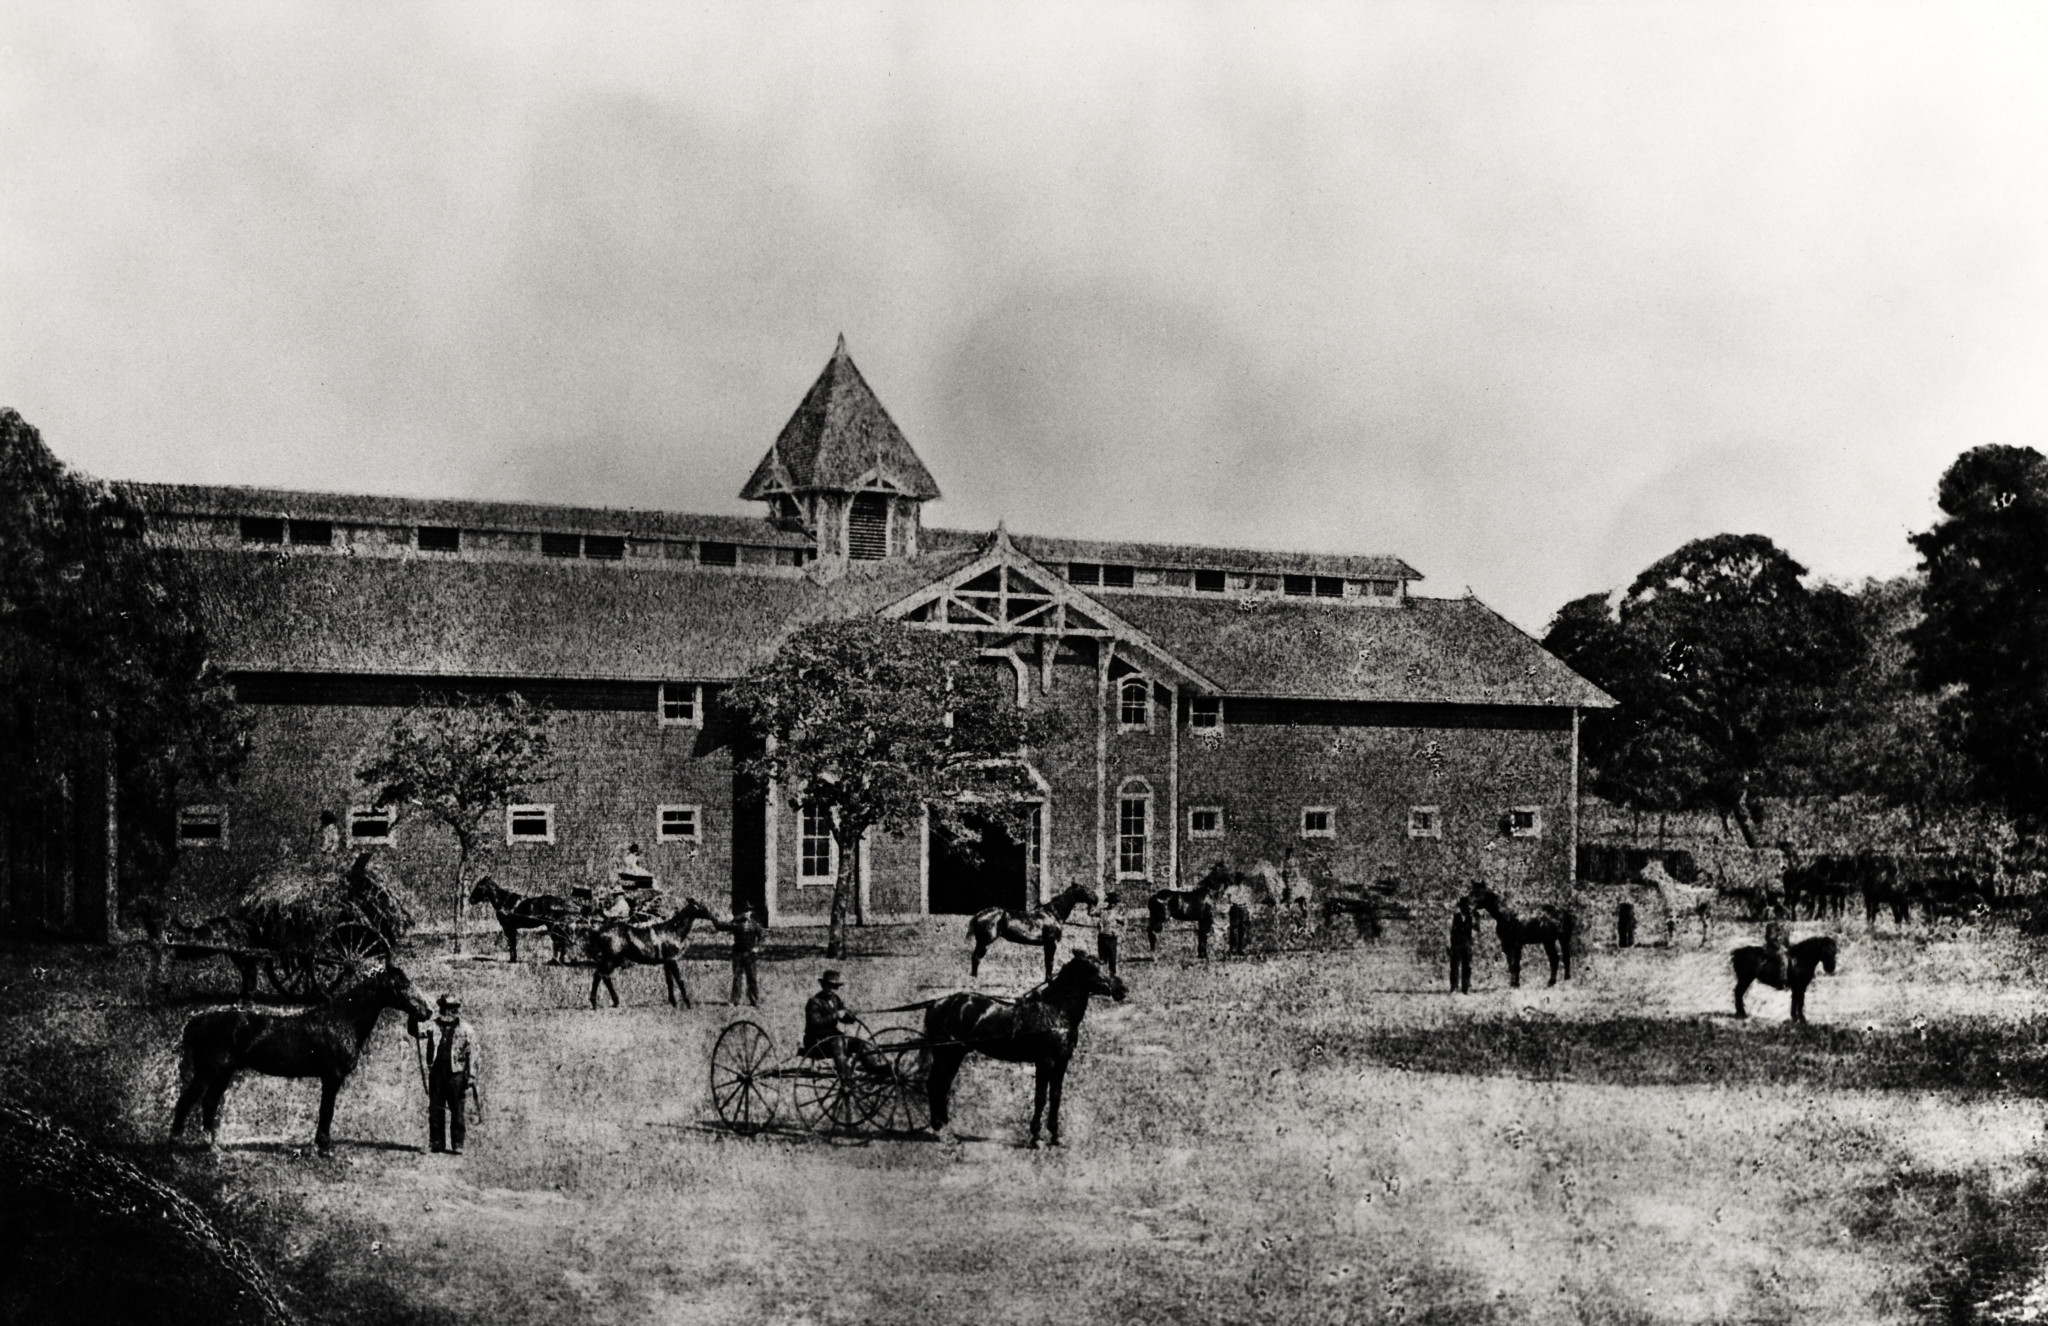 Arrow Pointing Down >> The Red Barn - Stanford 125